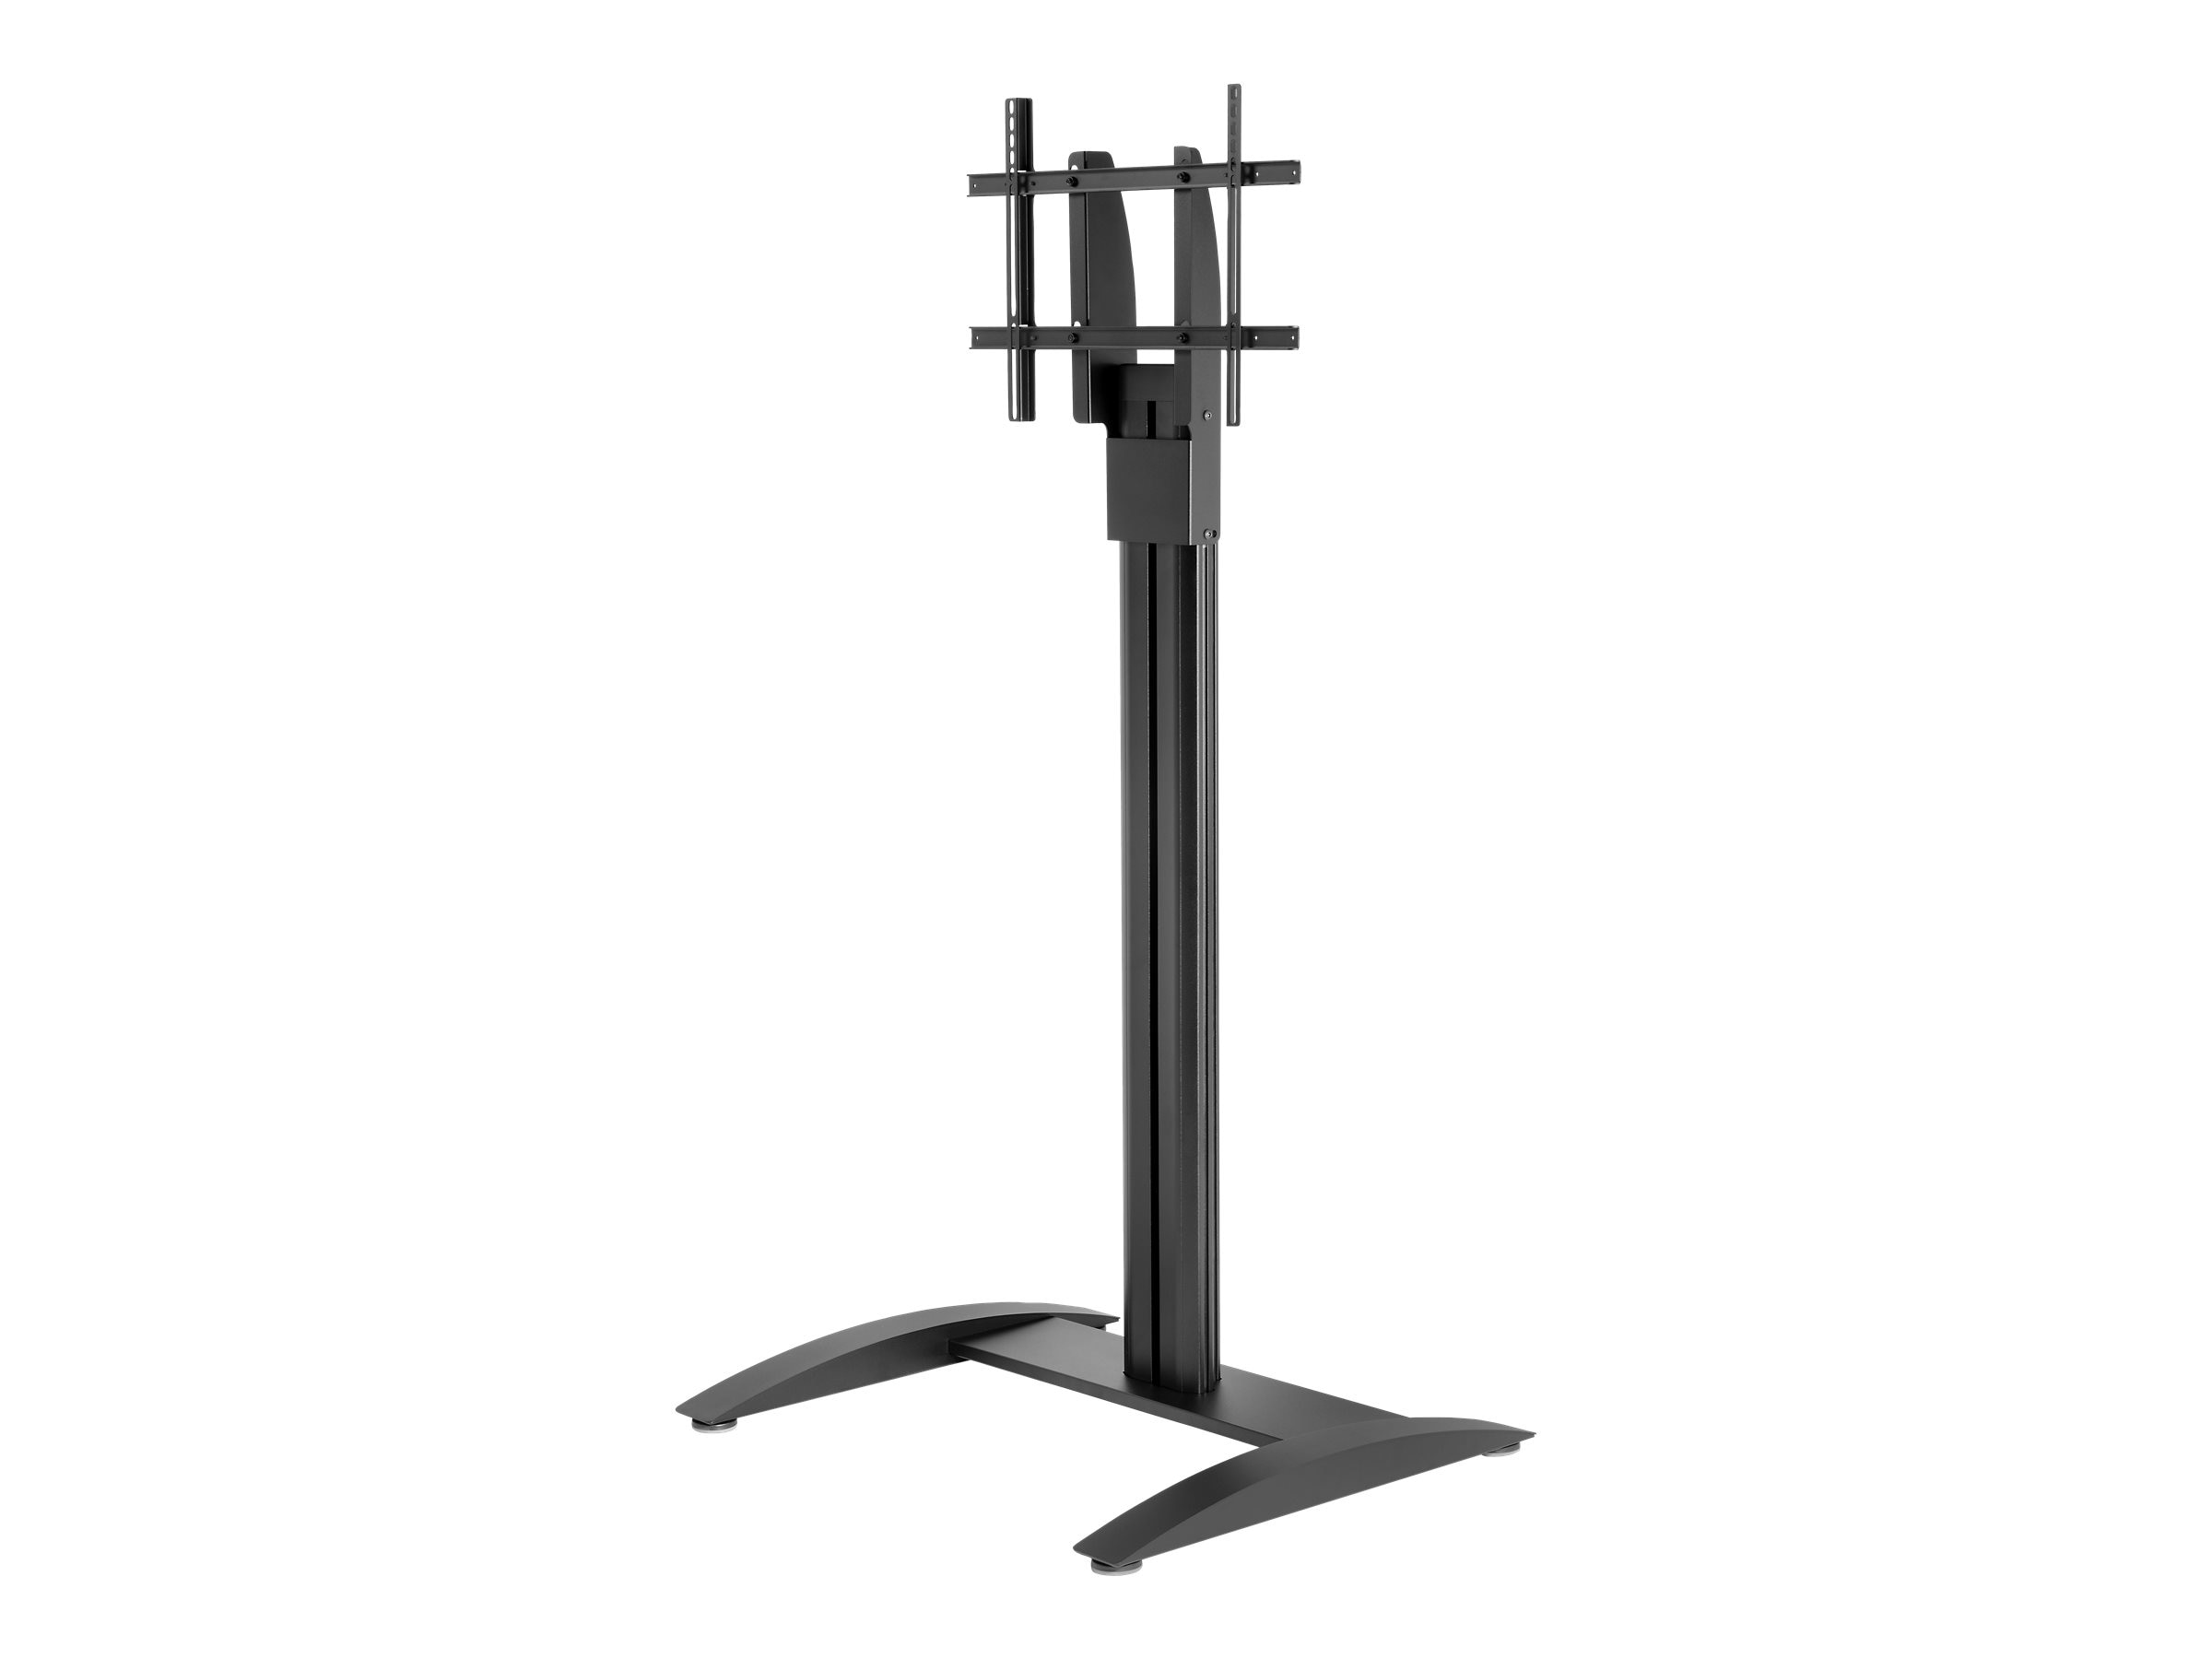 Peerless Flat Panel Stand for Displays up to 65